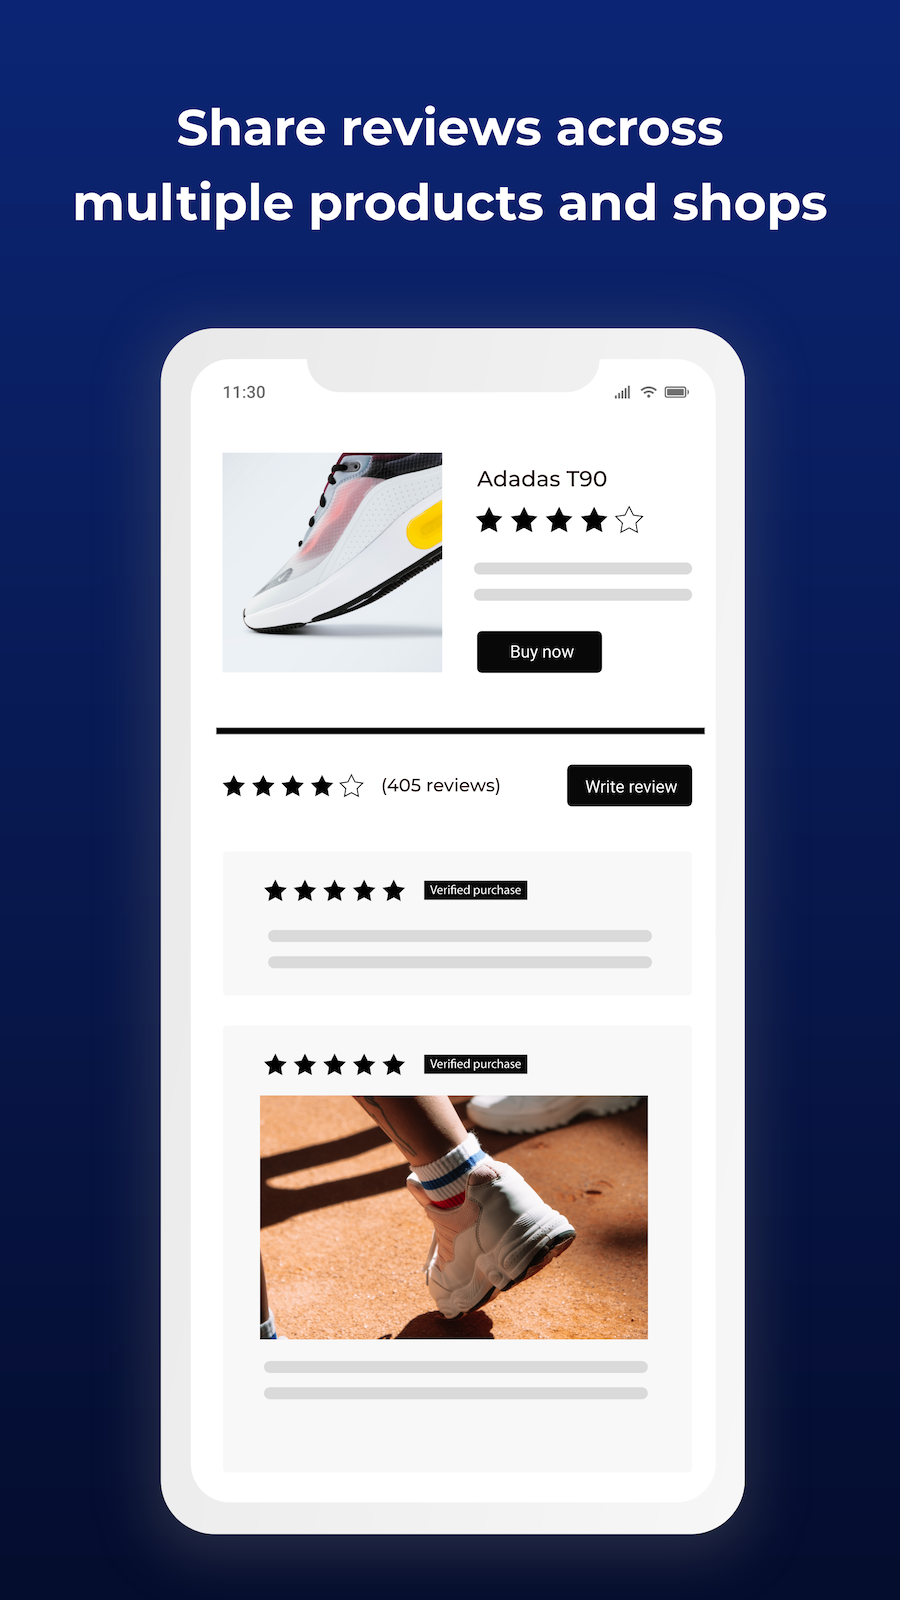 share reviews across multiple products, shops. Review imports